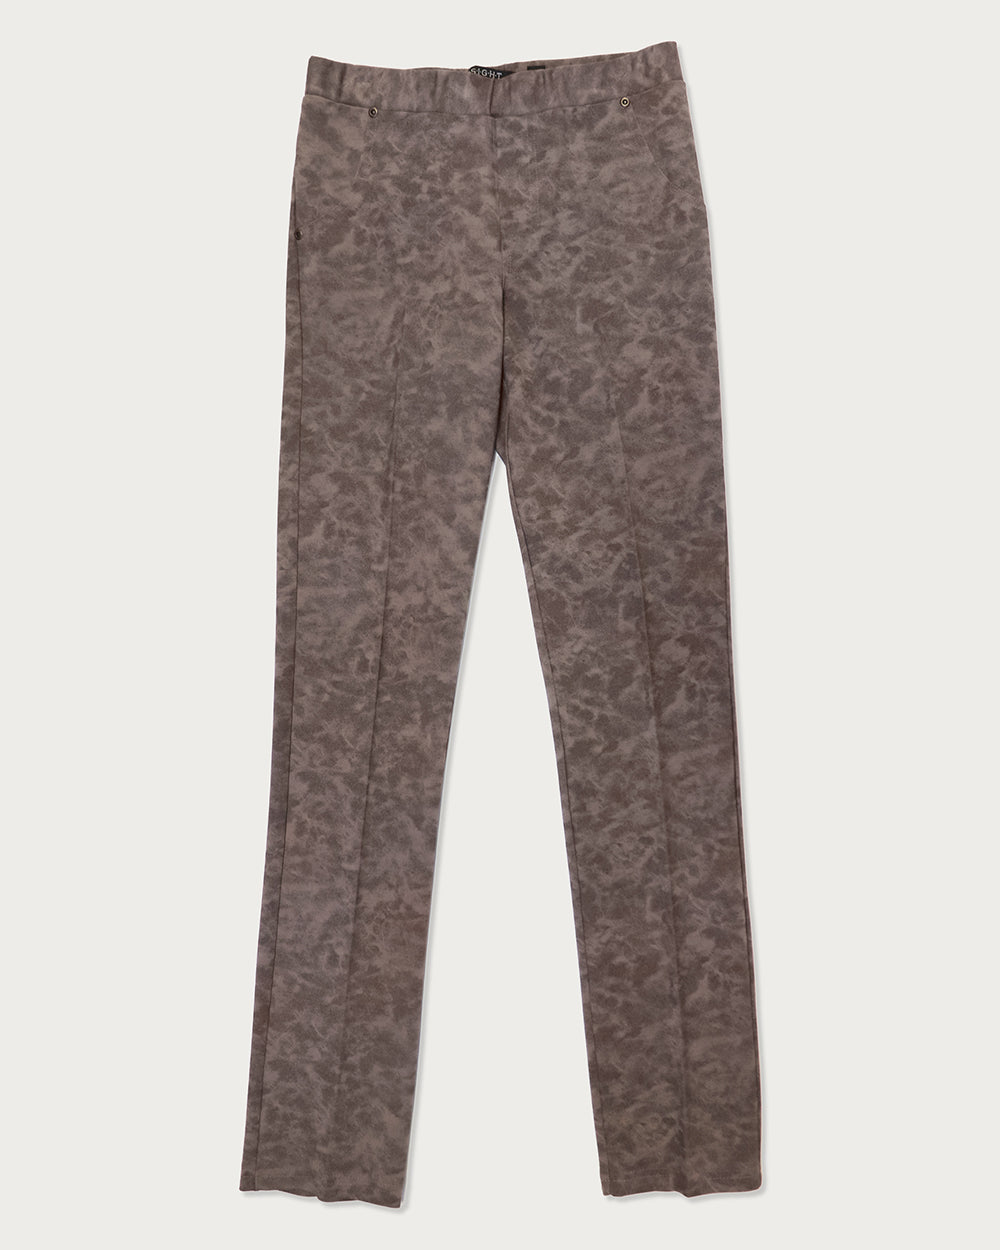 Insight Scuba Pant - Blurred Vision